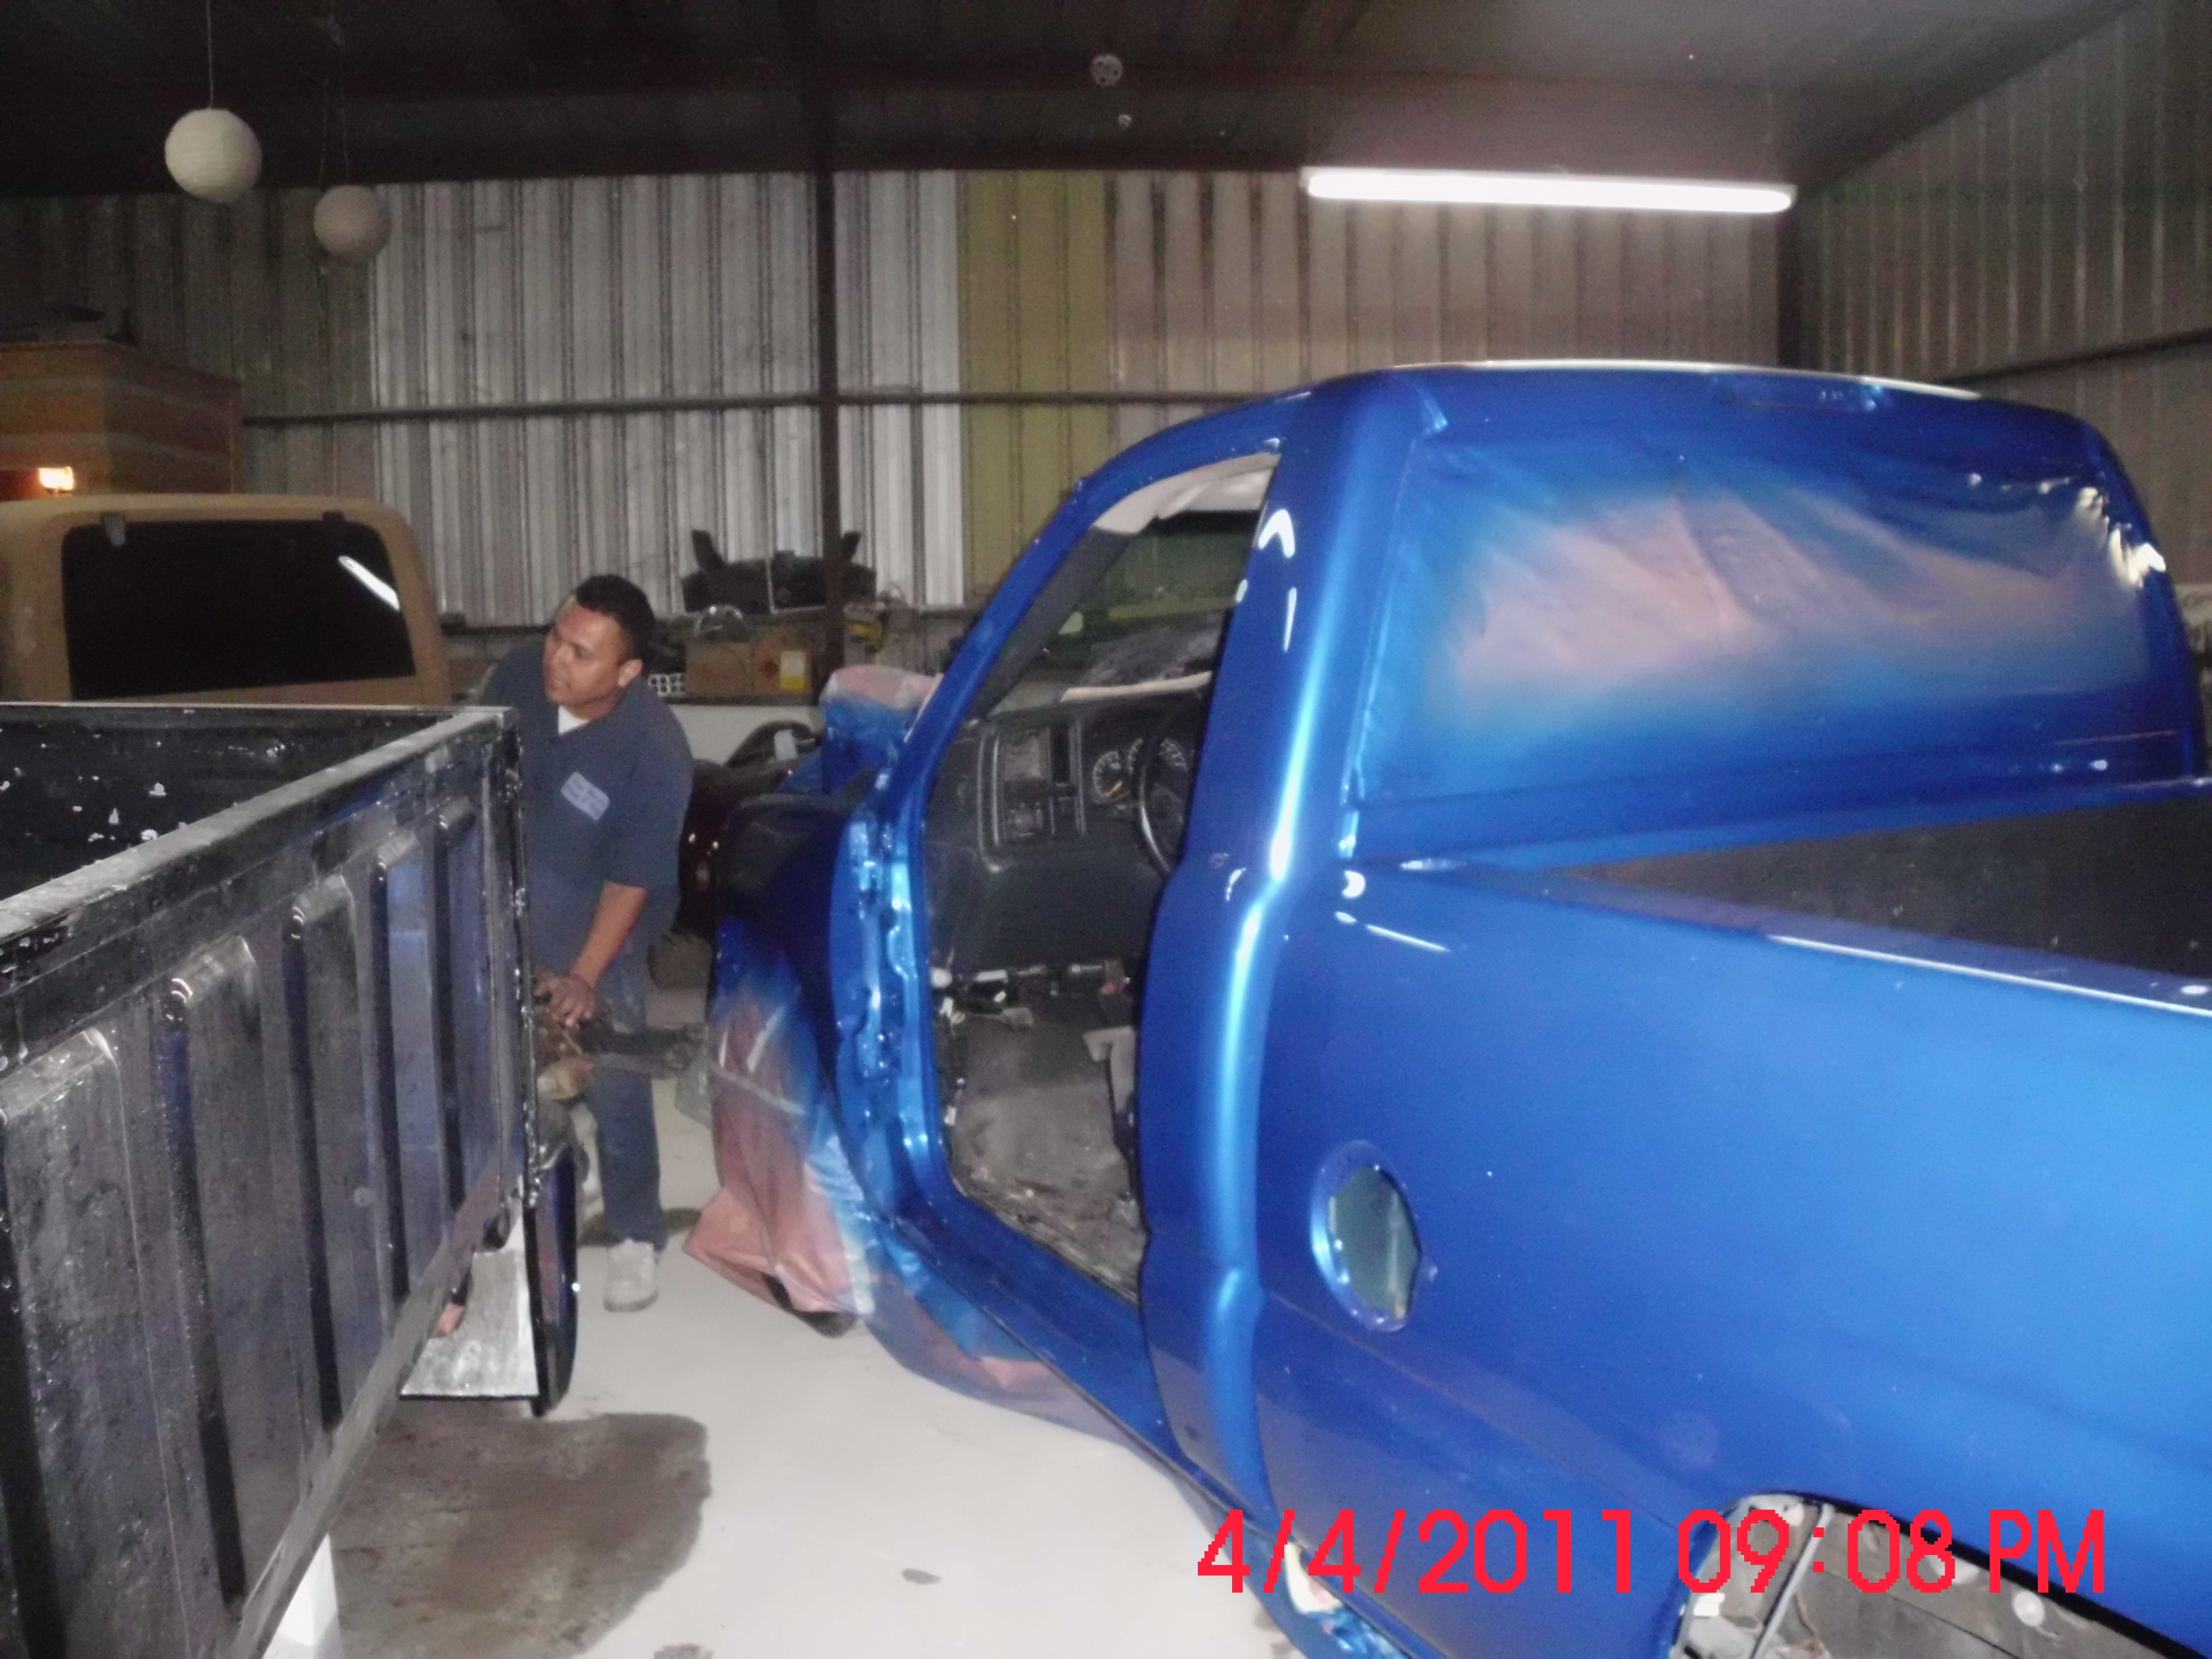 GabeNunez 2002 Chevrolet 1500 Regular Cab 15087561